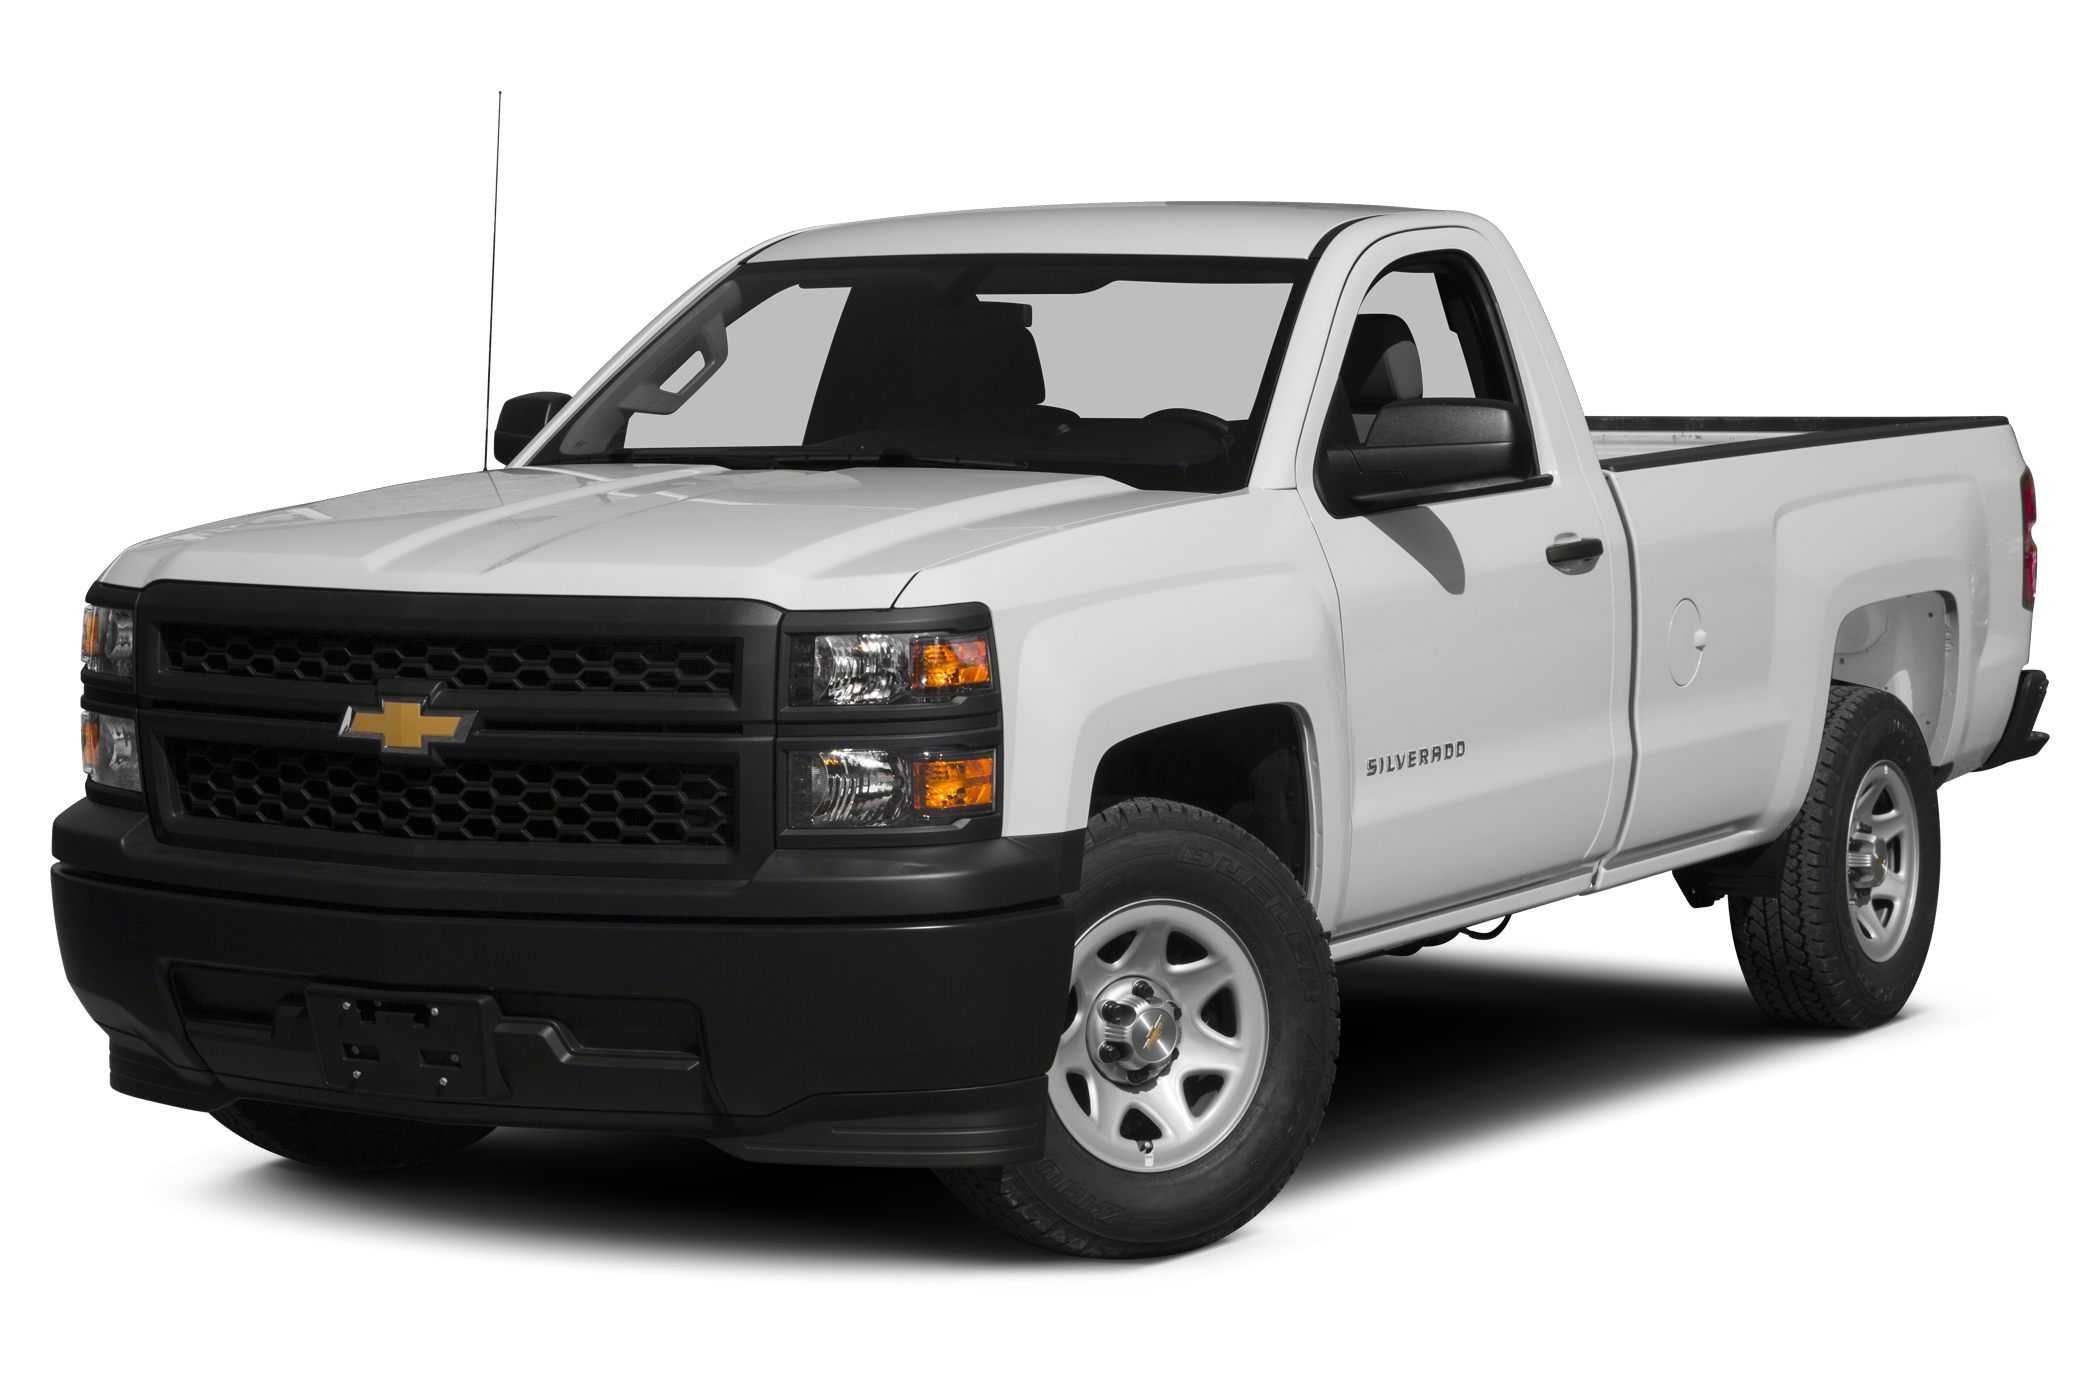 2015 Chevrolet Silverado 1500 1LT Extended Cab Pickup for sale in Grants Pass for $40,805 with 0 miles.